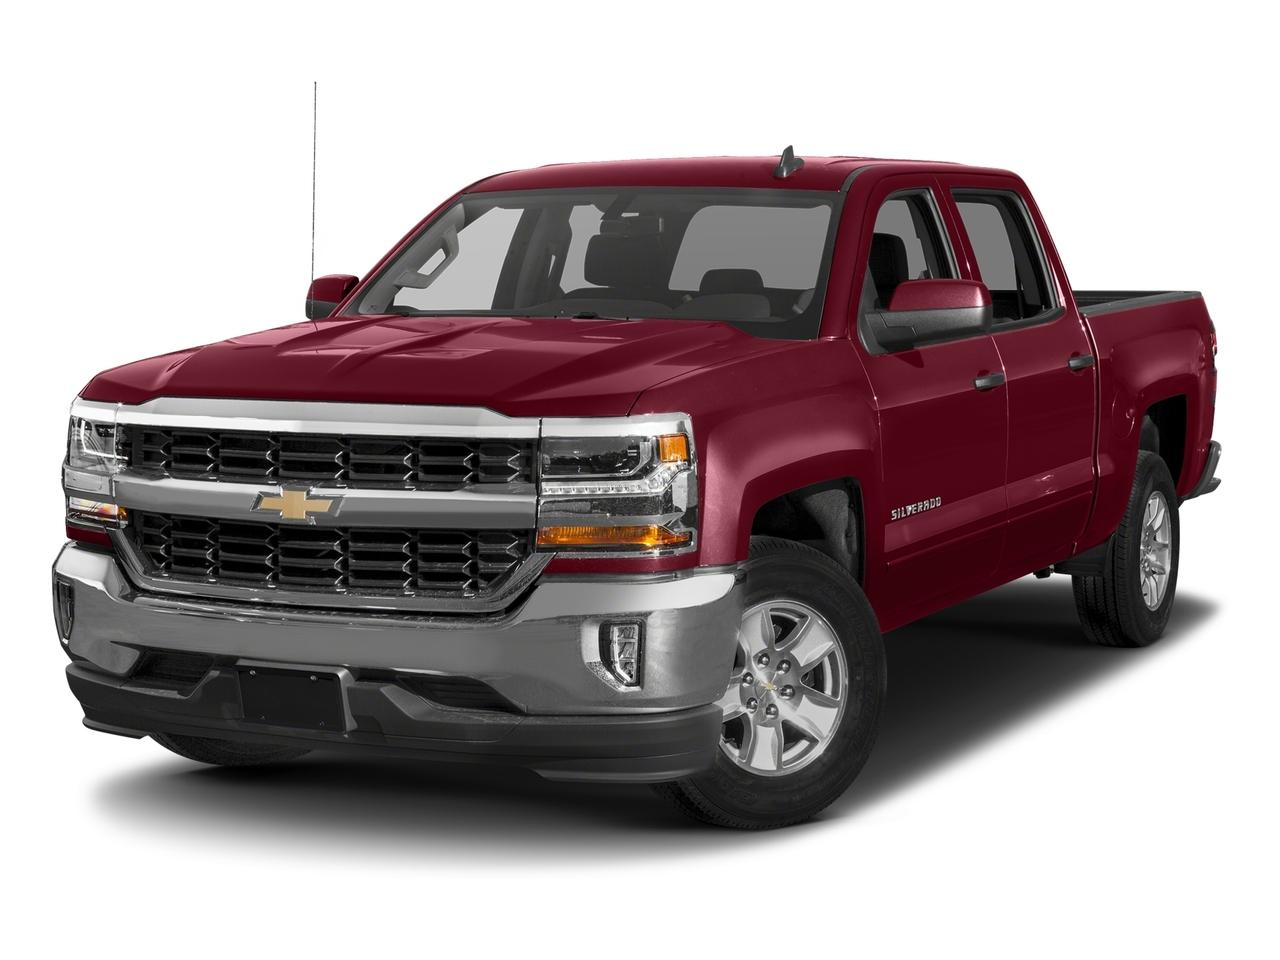 2017 Chevrolet Silverado 1500 Vehicle Photo in Vincennes, IN 47591